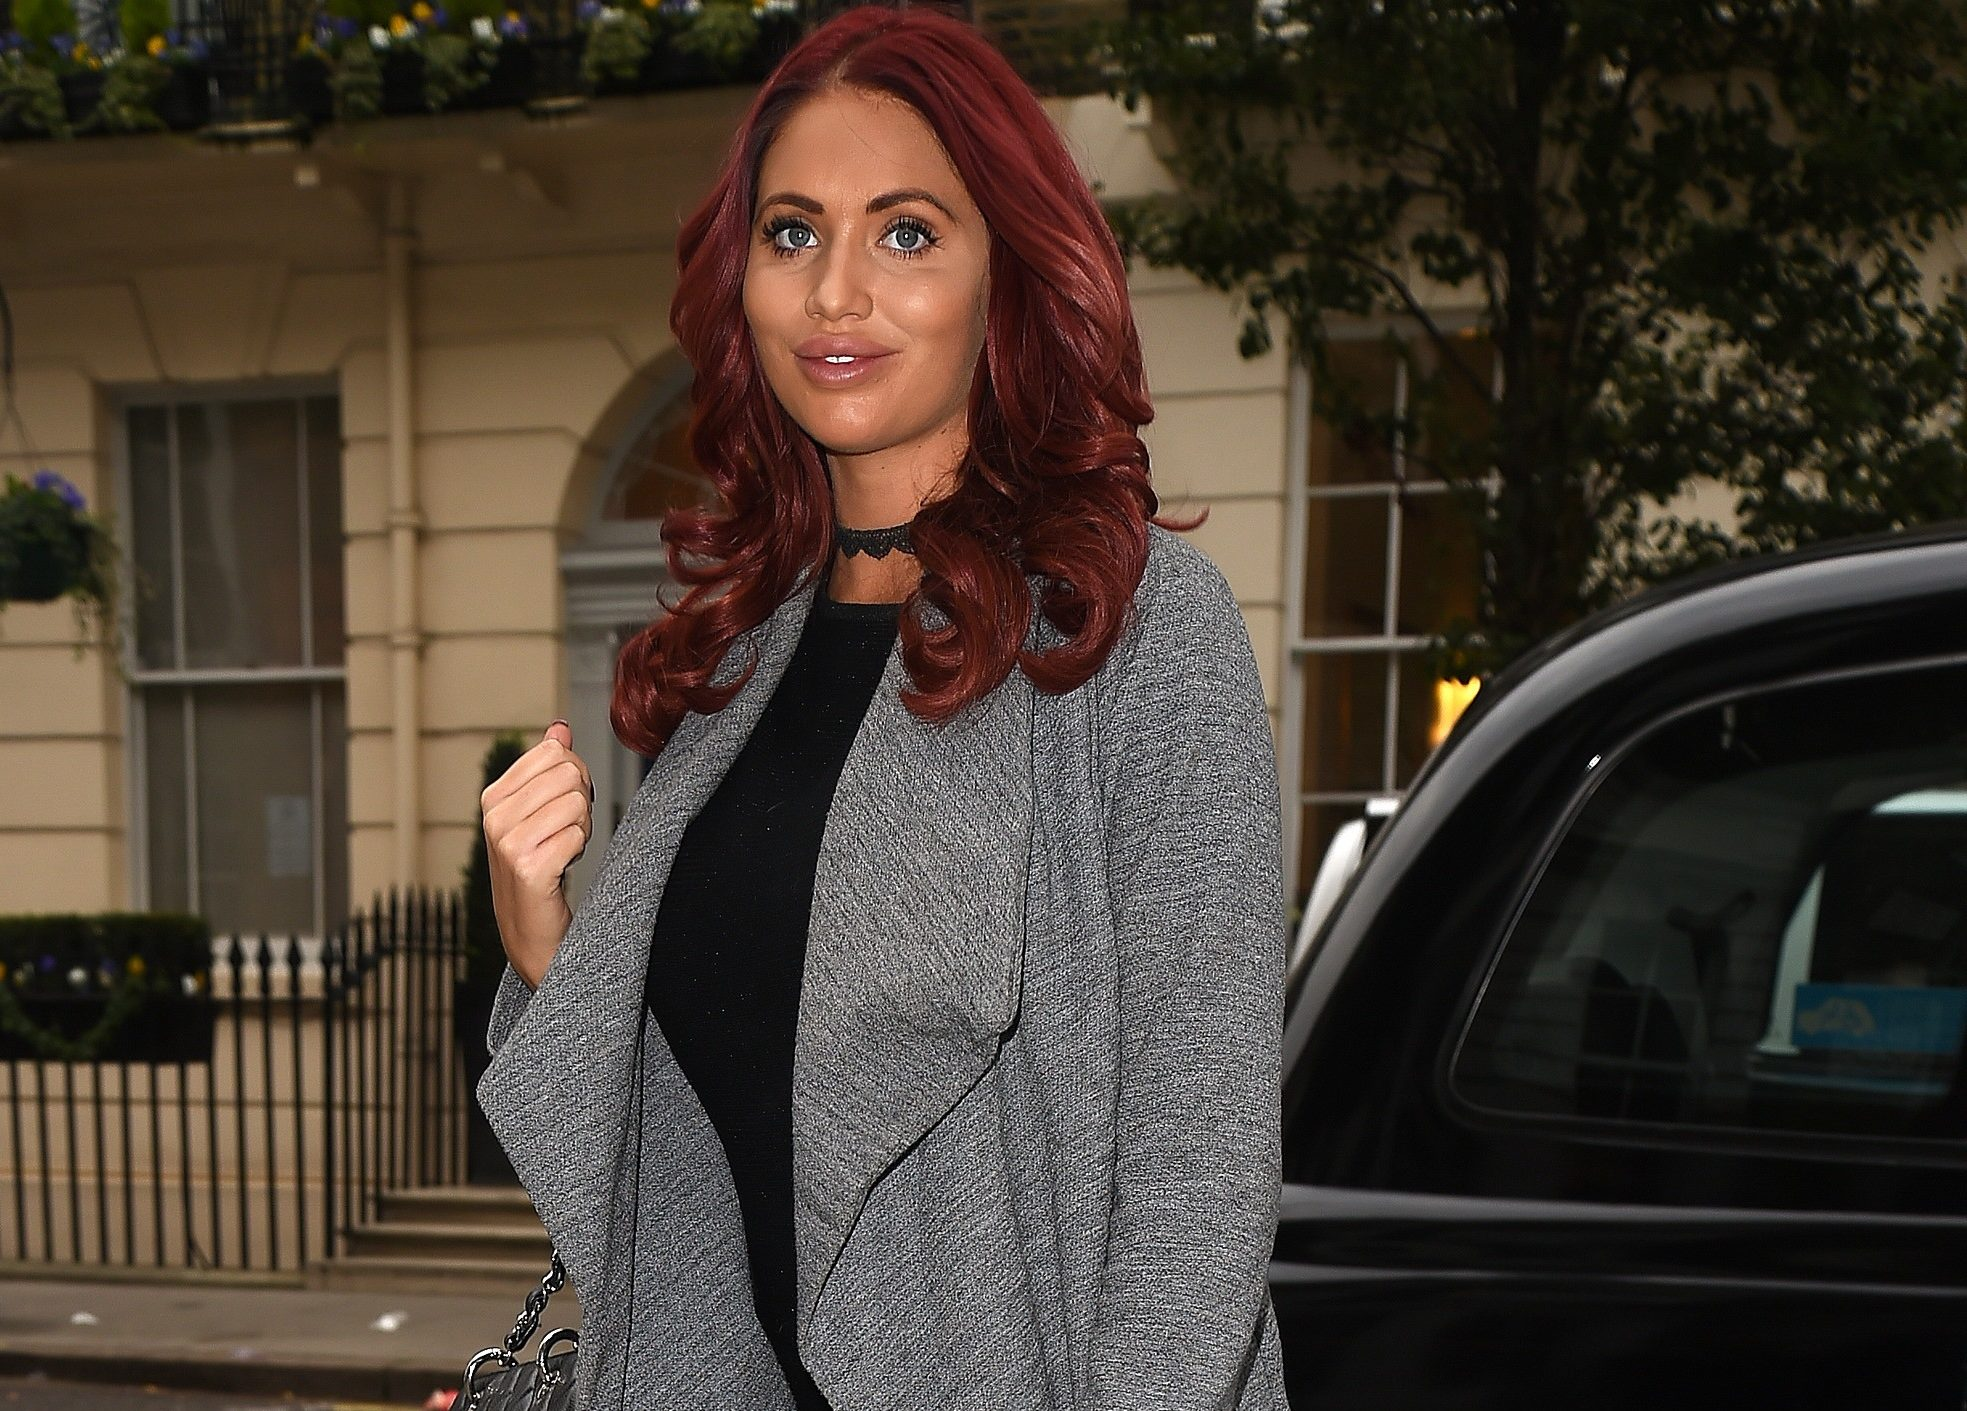 2019 Amy Childs naked (81 photos), Ass, Cleavage, Instagram, braless 2015